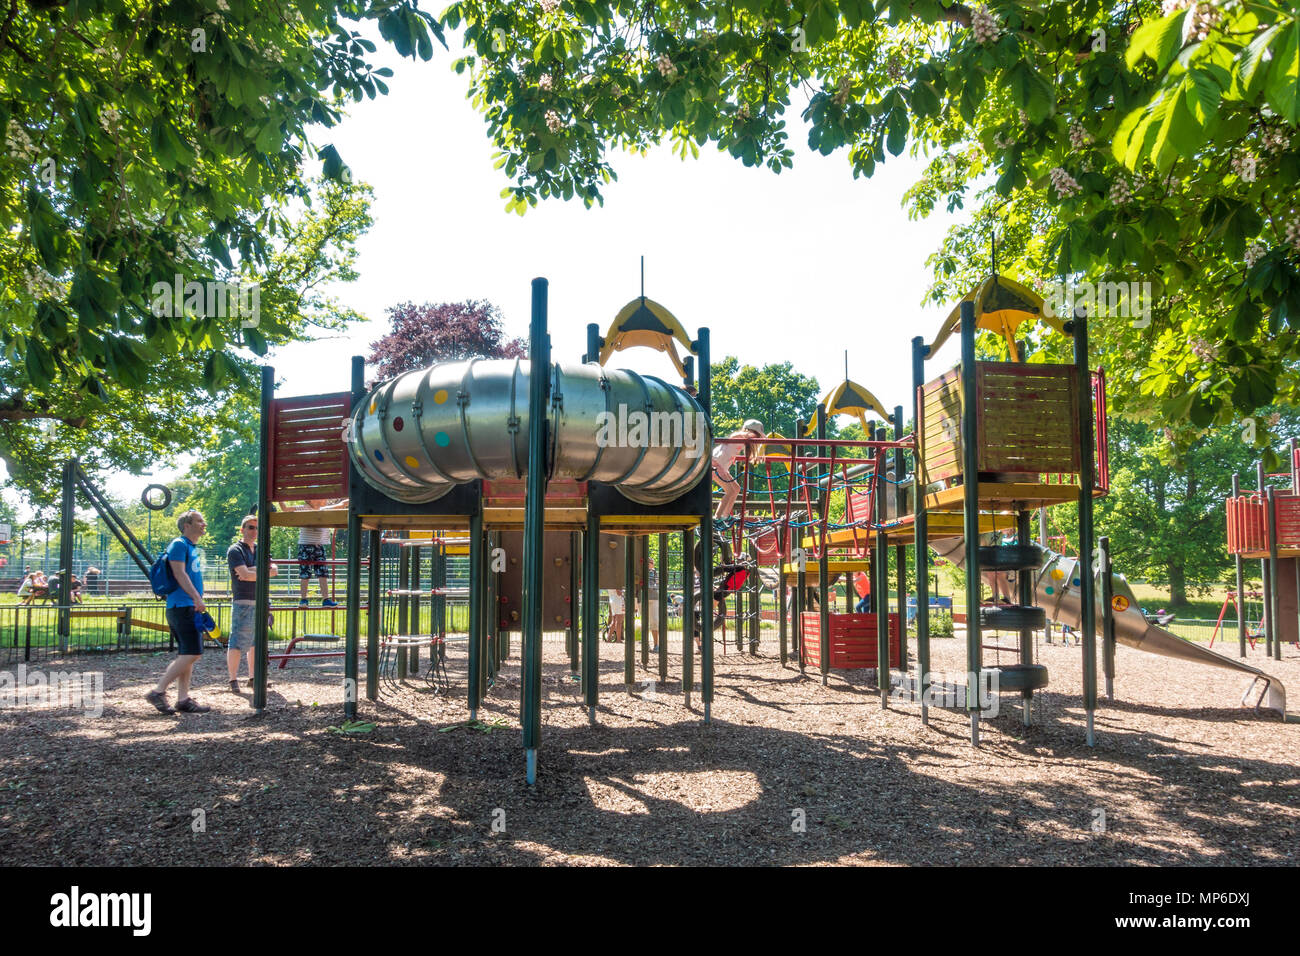 children-play-outside-on-climbing-frames-in-prospect-park-in-reading-berkshire-uk-MP6DXJ.jpg